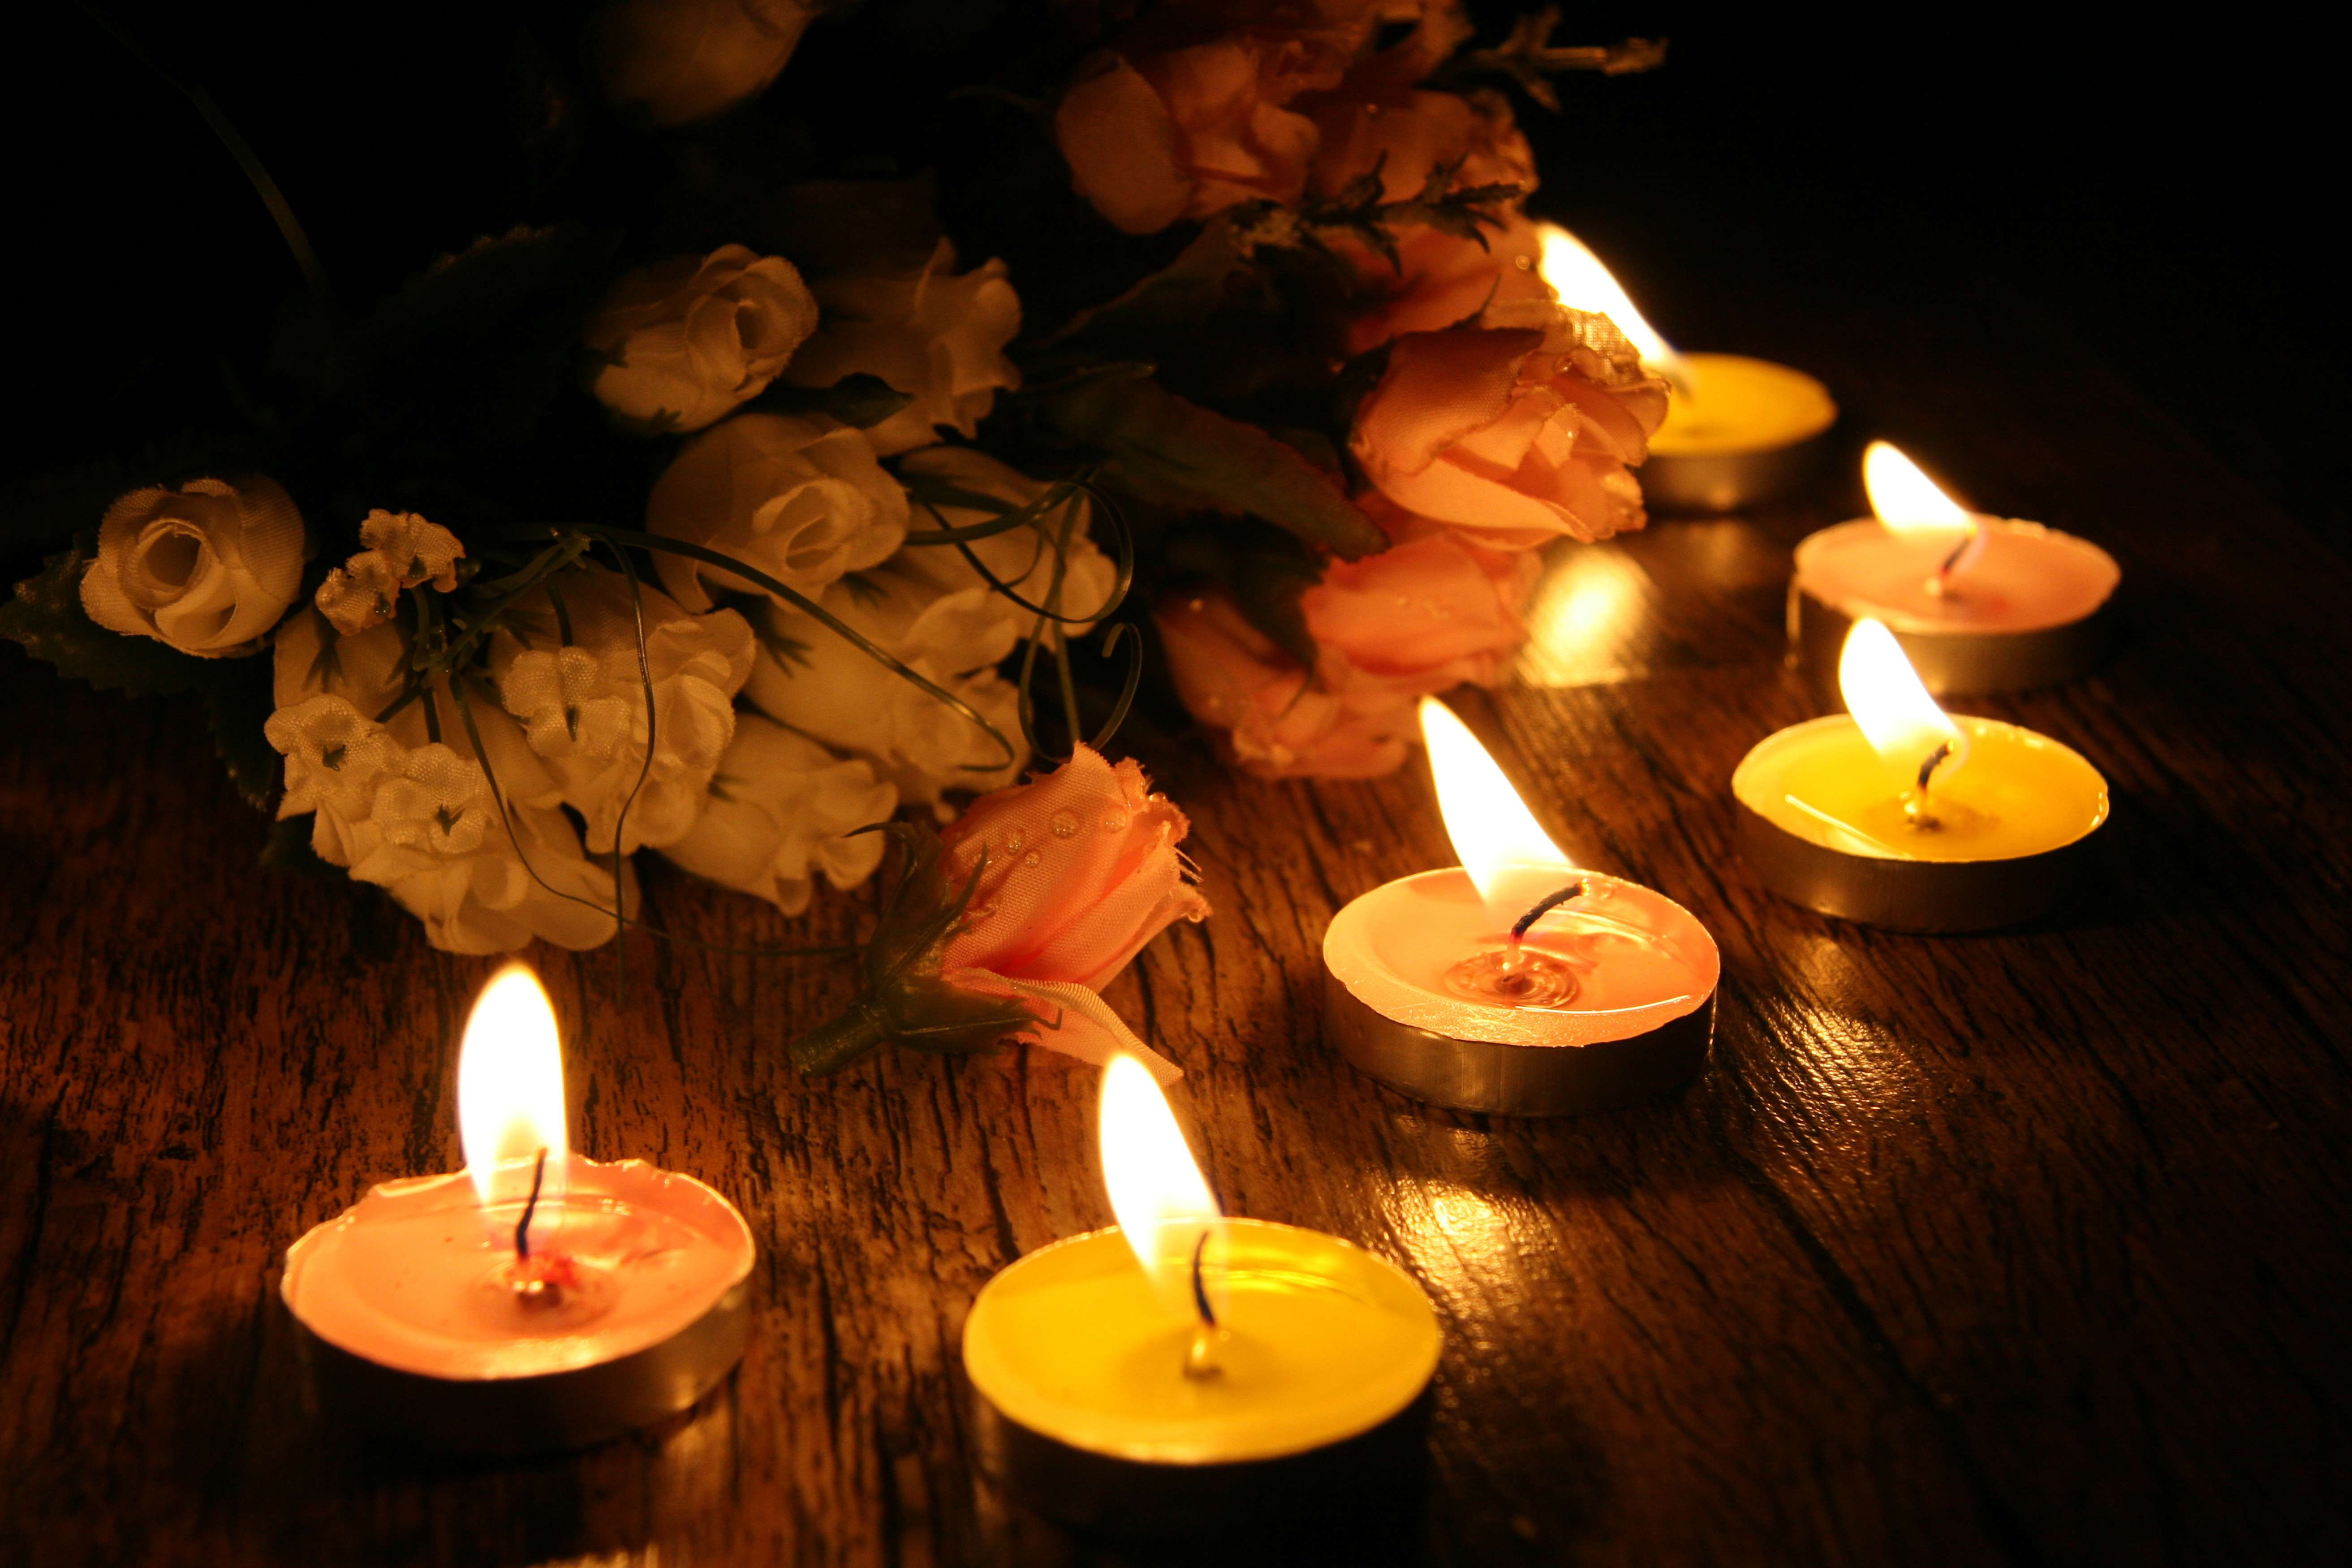 Candles Hd Wallpapers Candle Backgrounds And Images: View Of Candles Wallpapers 6 : Hd Wallpapers